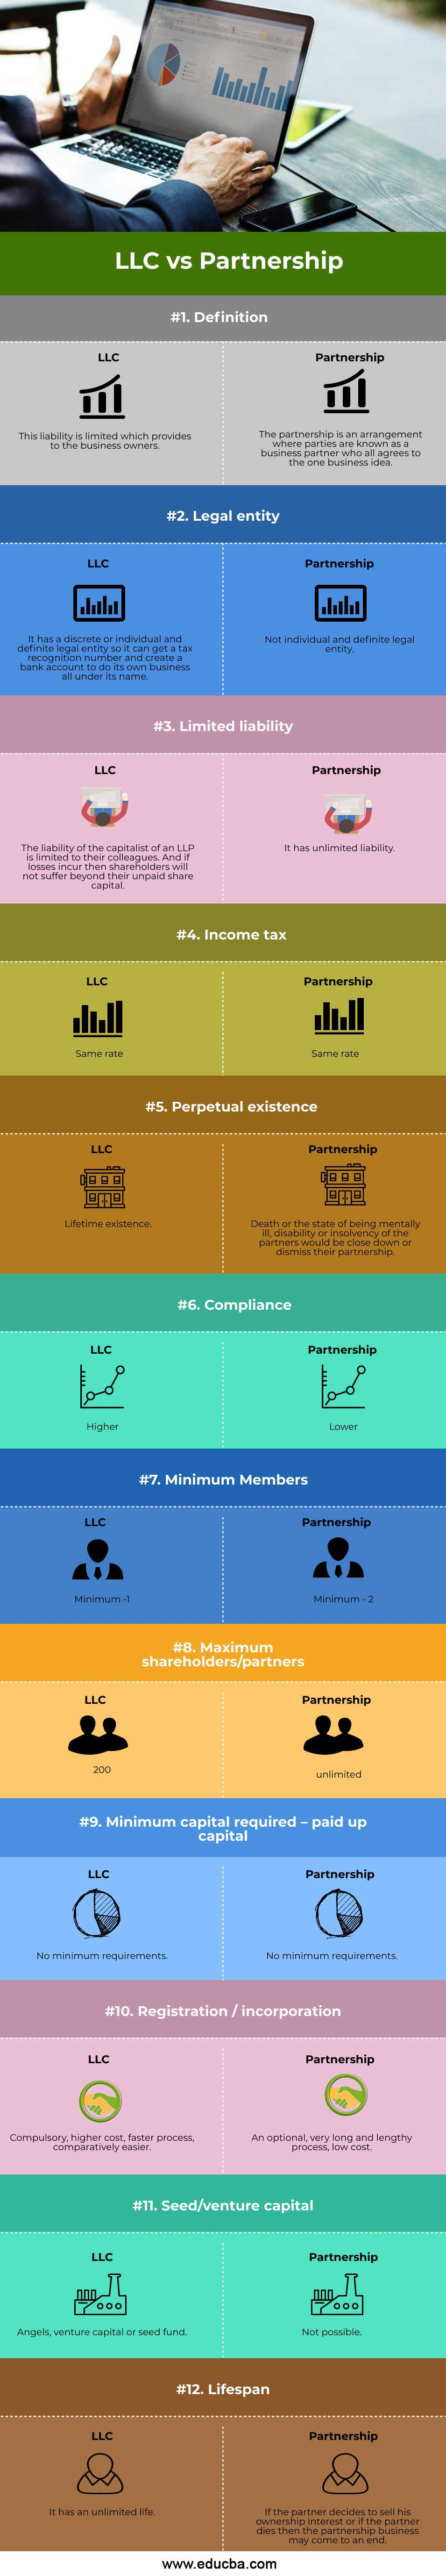 LLC-vs-Partnership-info